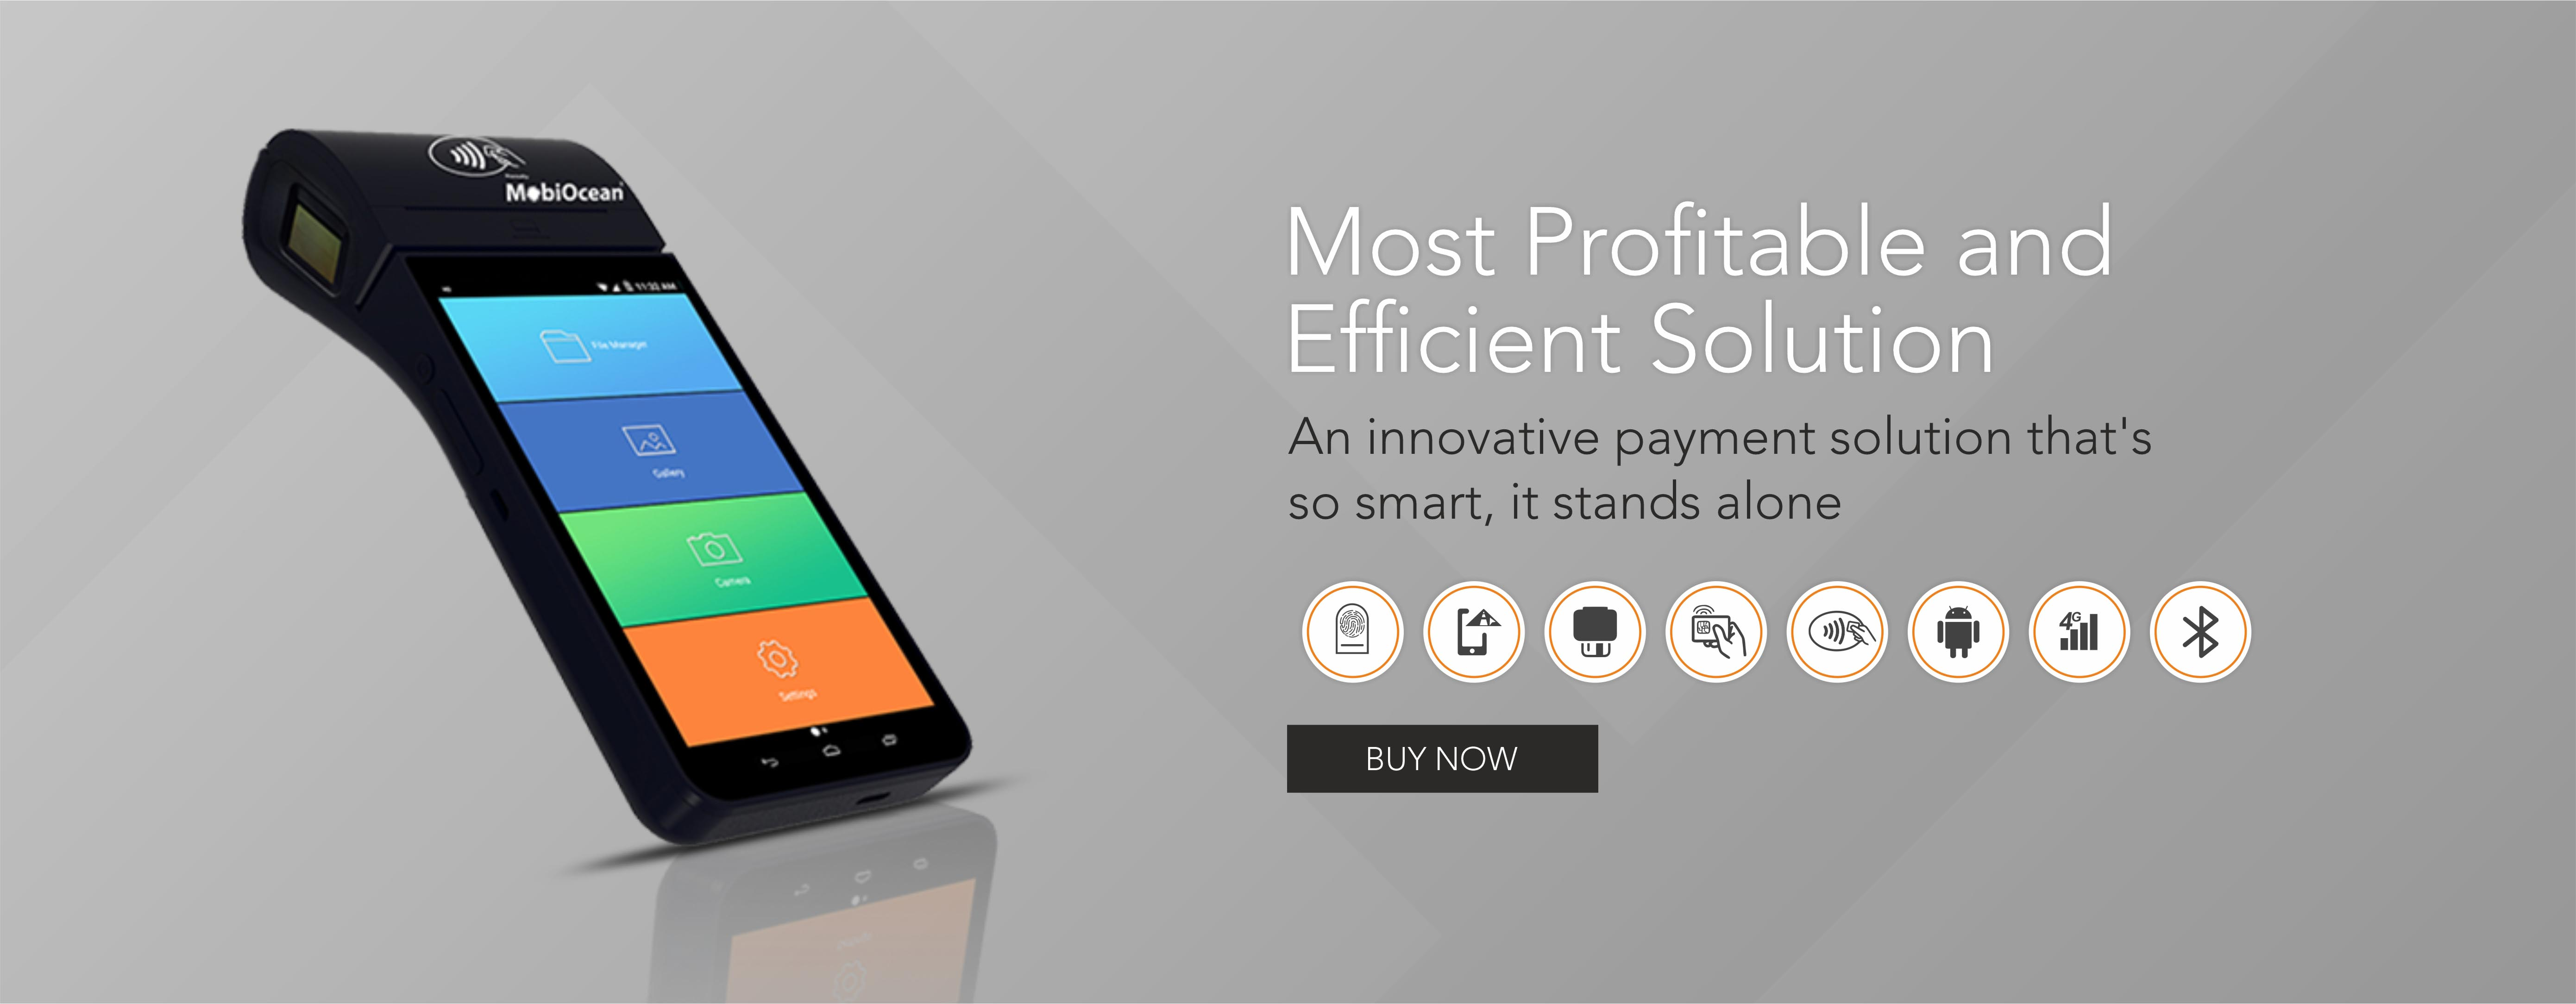 Android pos|Android pos with payments|Android Retail pos - MobiOcean